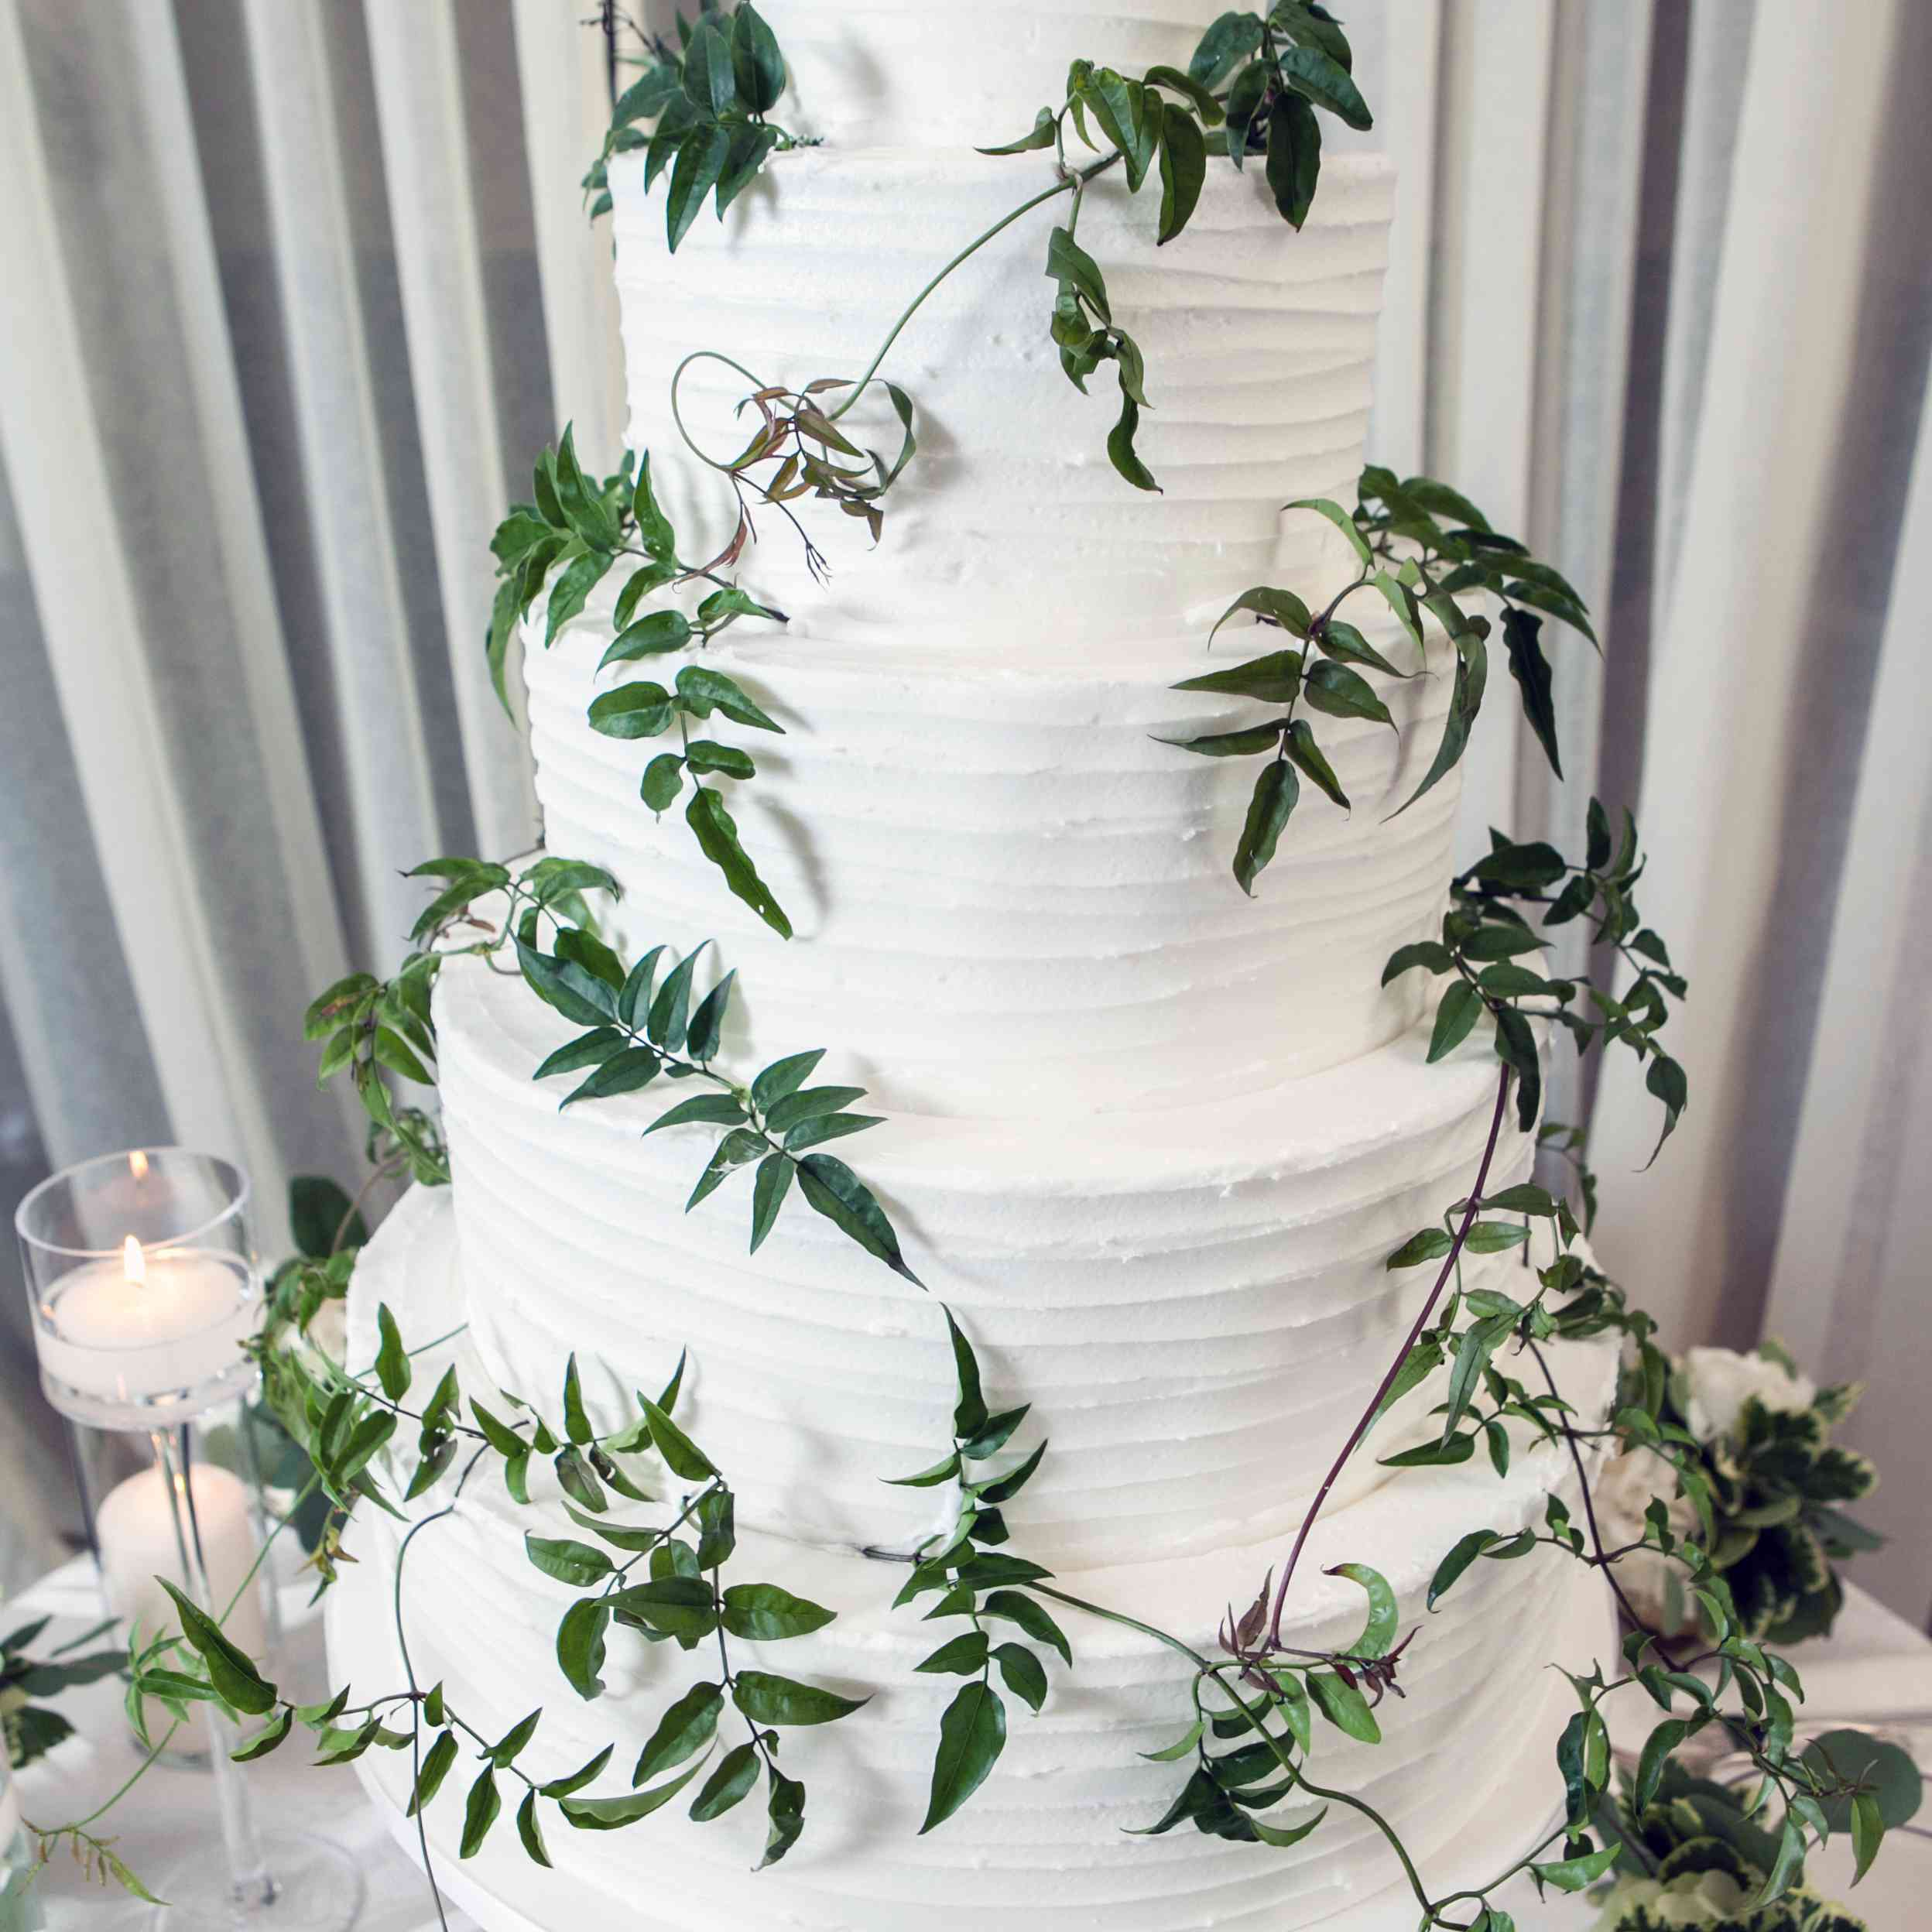 <p>White Buttercream Cake With Greenery</p><br><br>